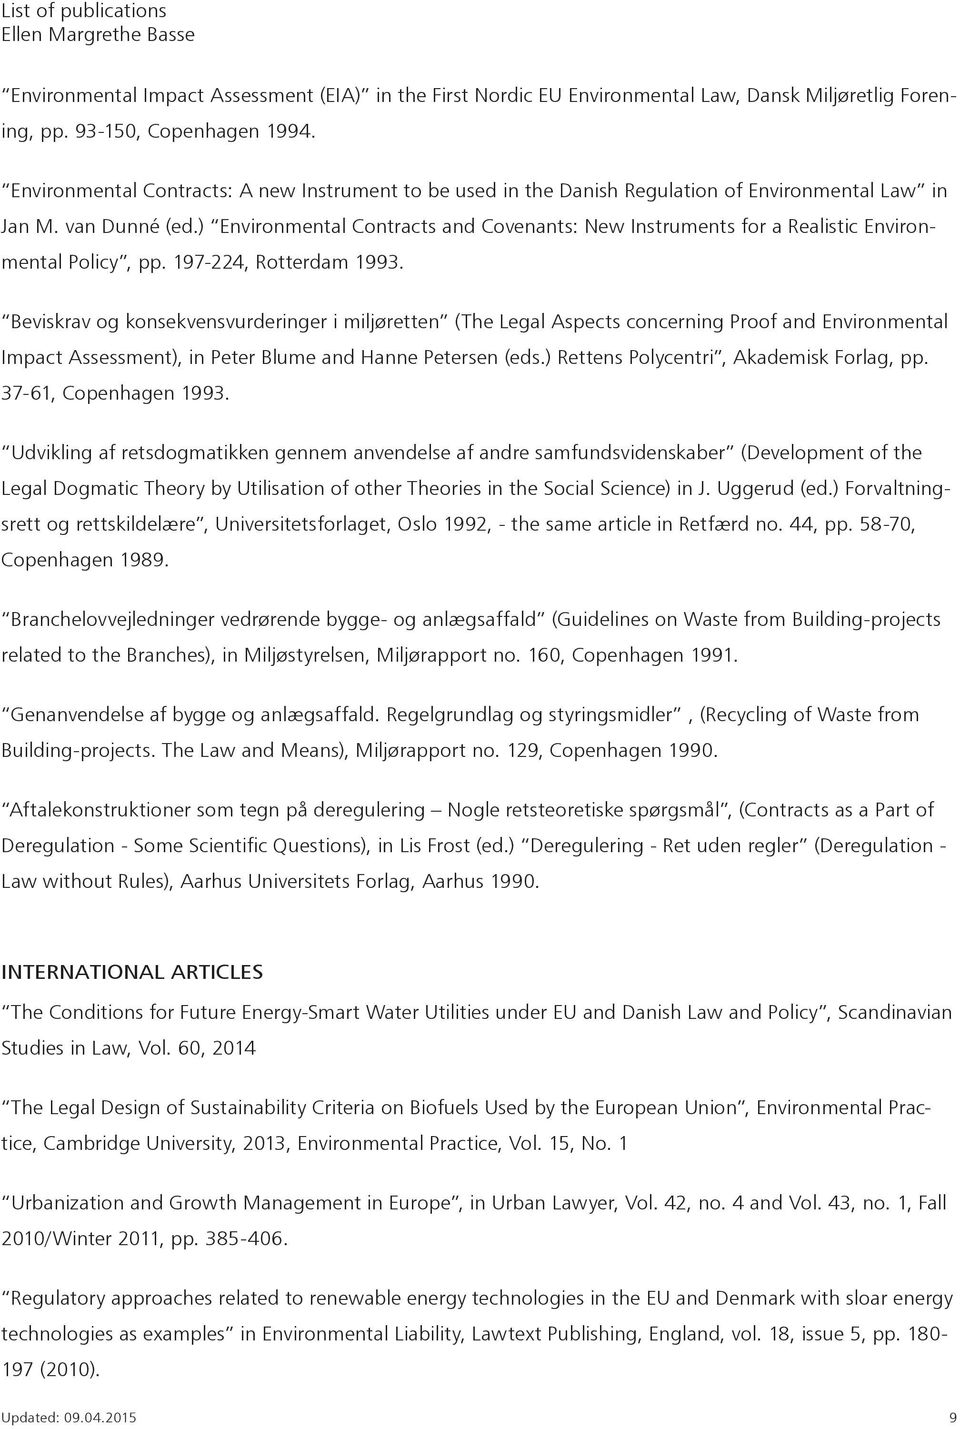 ) Environmental Contracts and Covenants: New Instruments for a Realistic Environmental Policy, pp. 197-224, Rotterdam 1993.